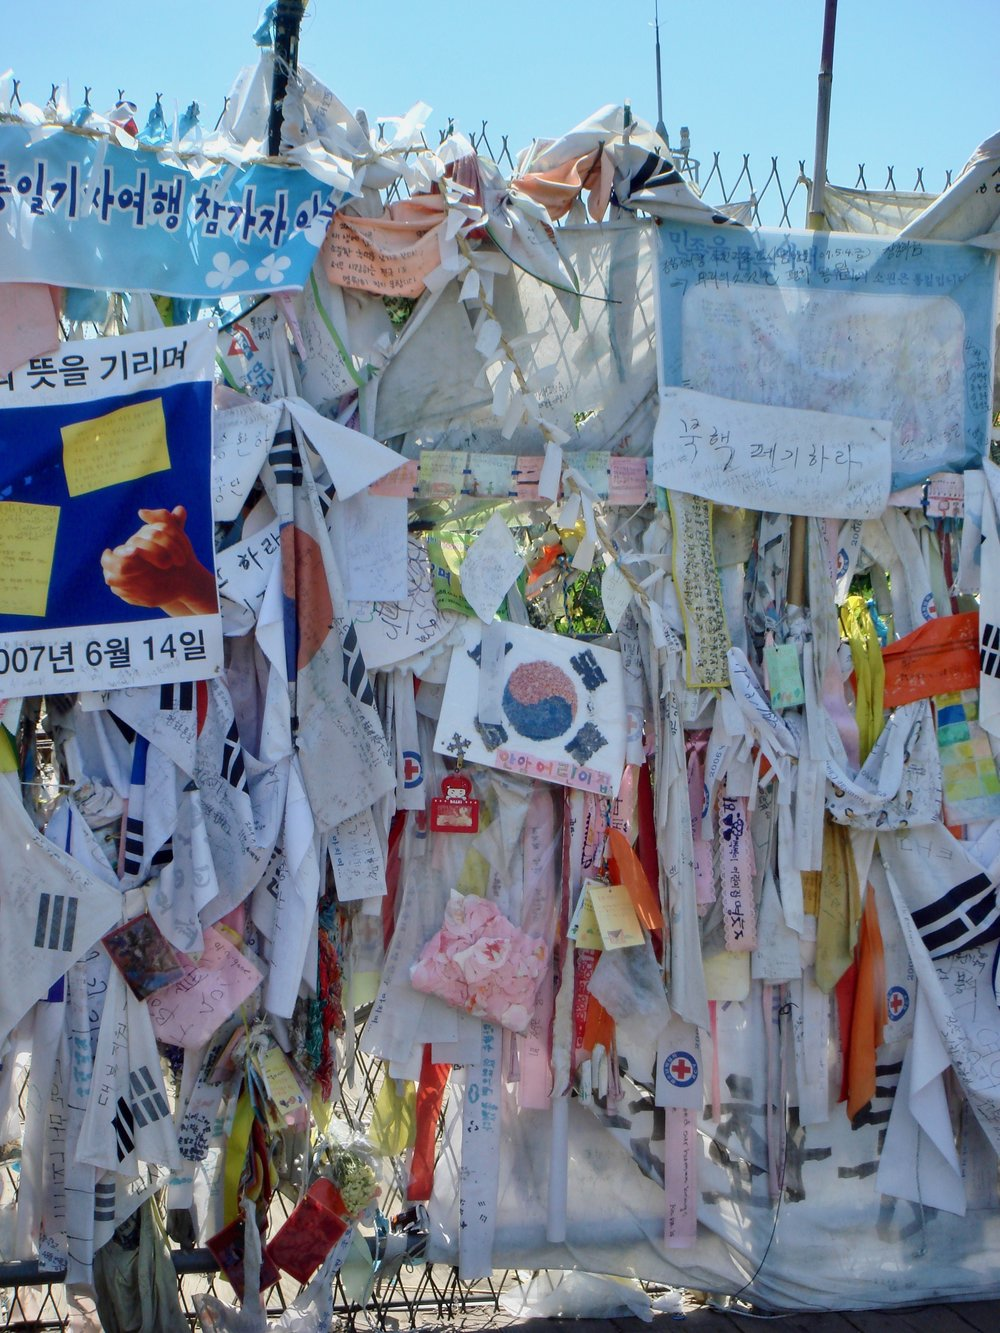 South Korean's leave notes for loved ones that they lost to the North when the Korean War ended, and prayers for peace and unification.